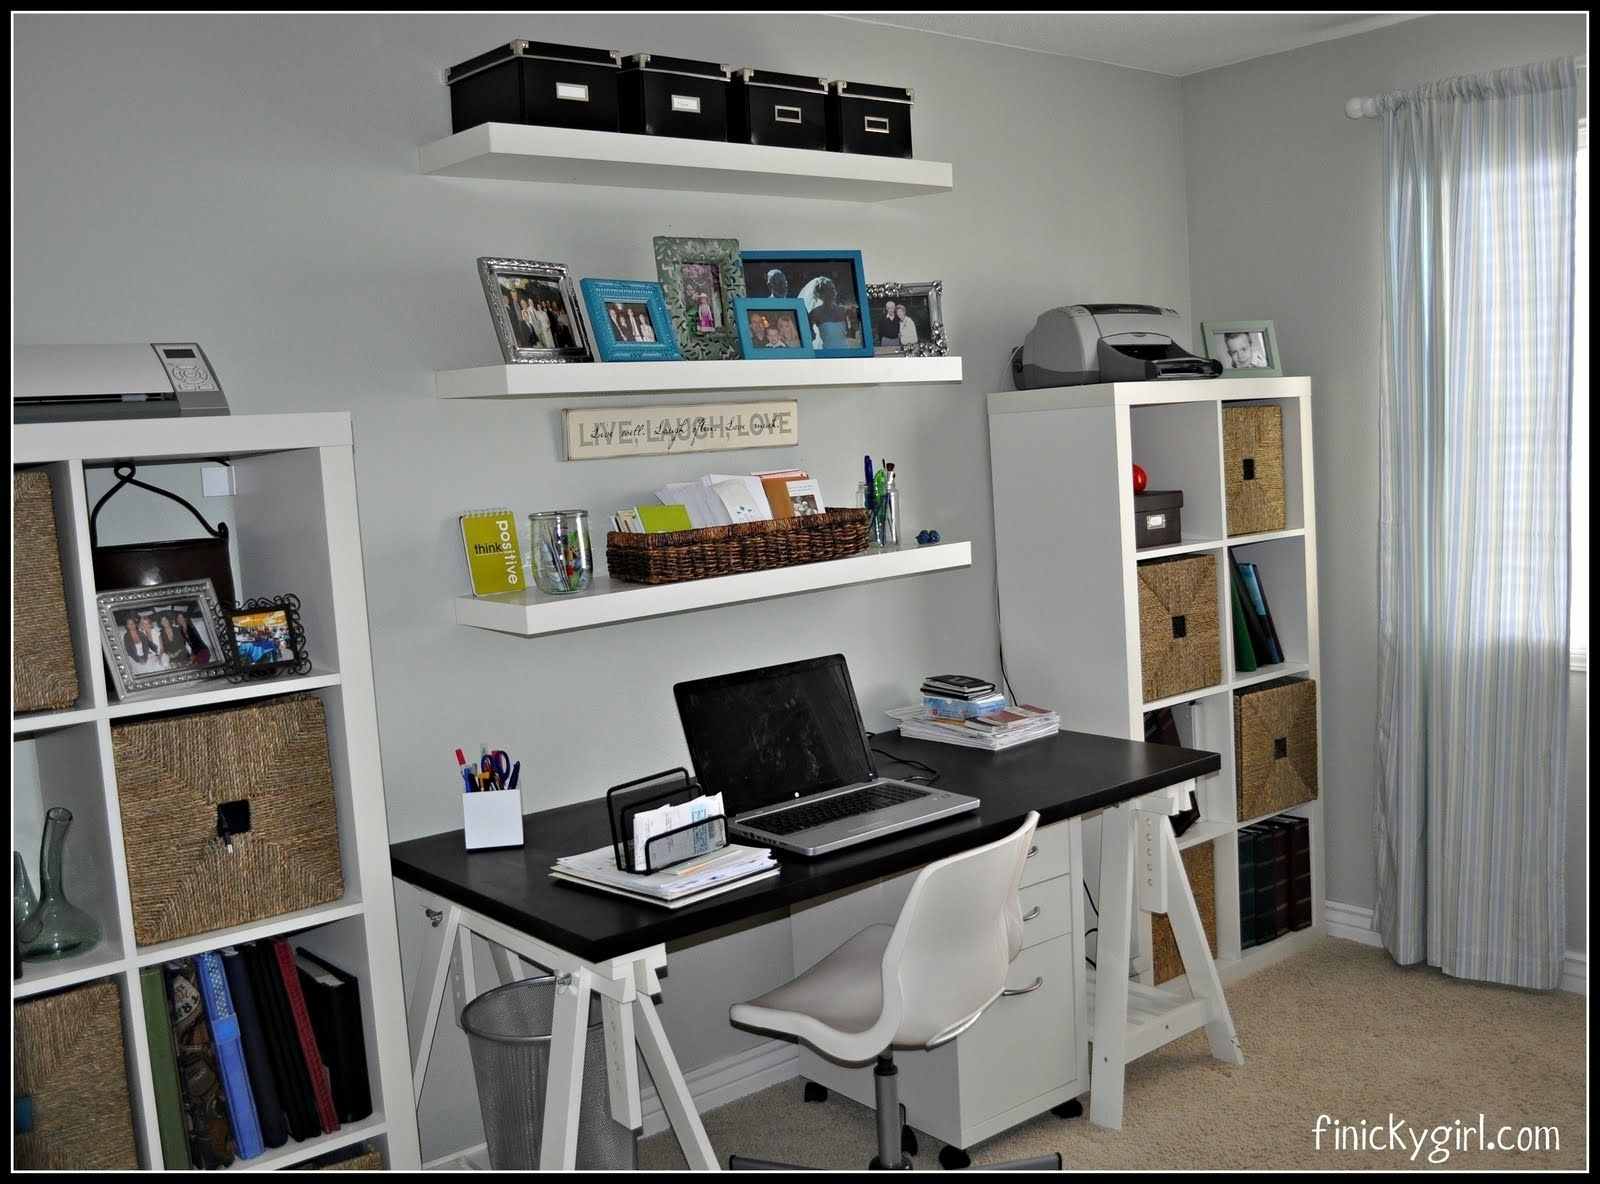 Office Desk With Shelves Above Home Office Chairs Office Wall Shelves Desk Shelves